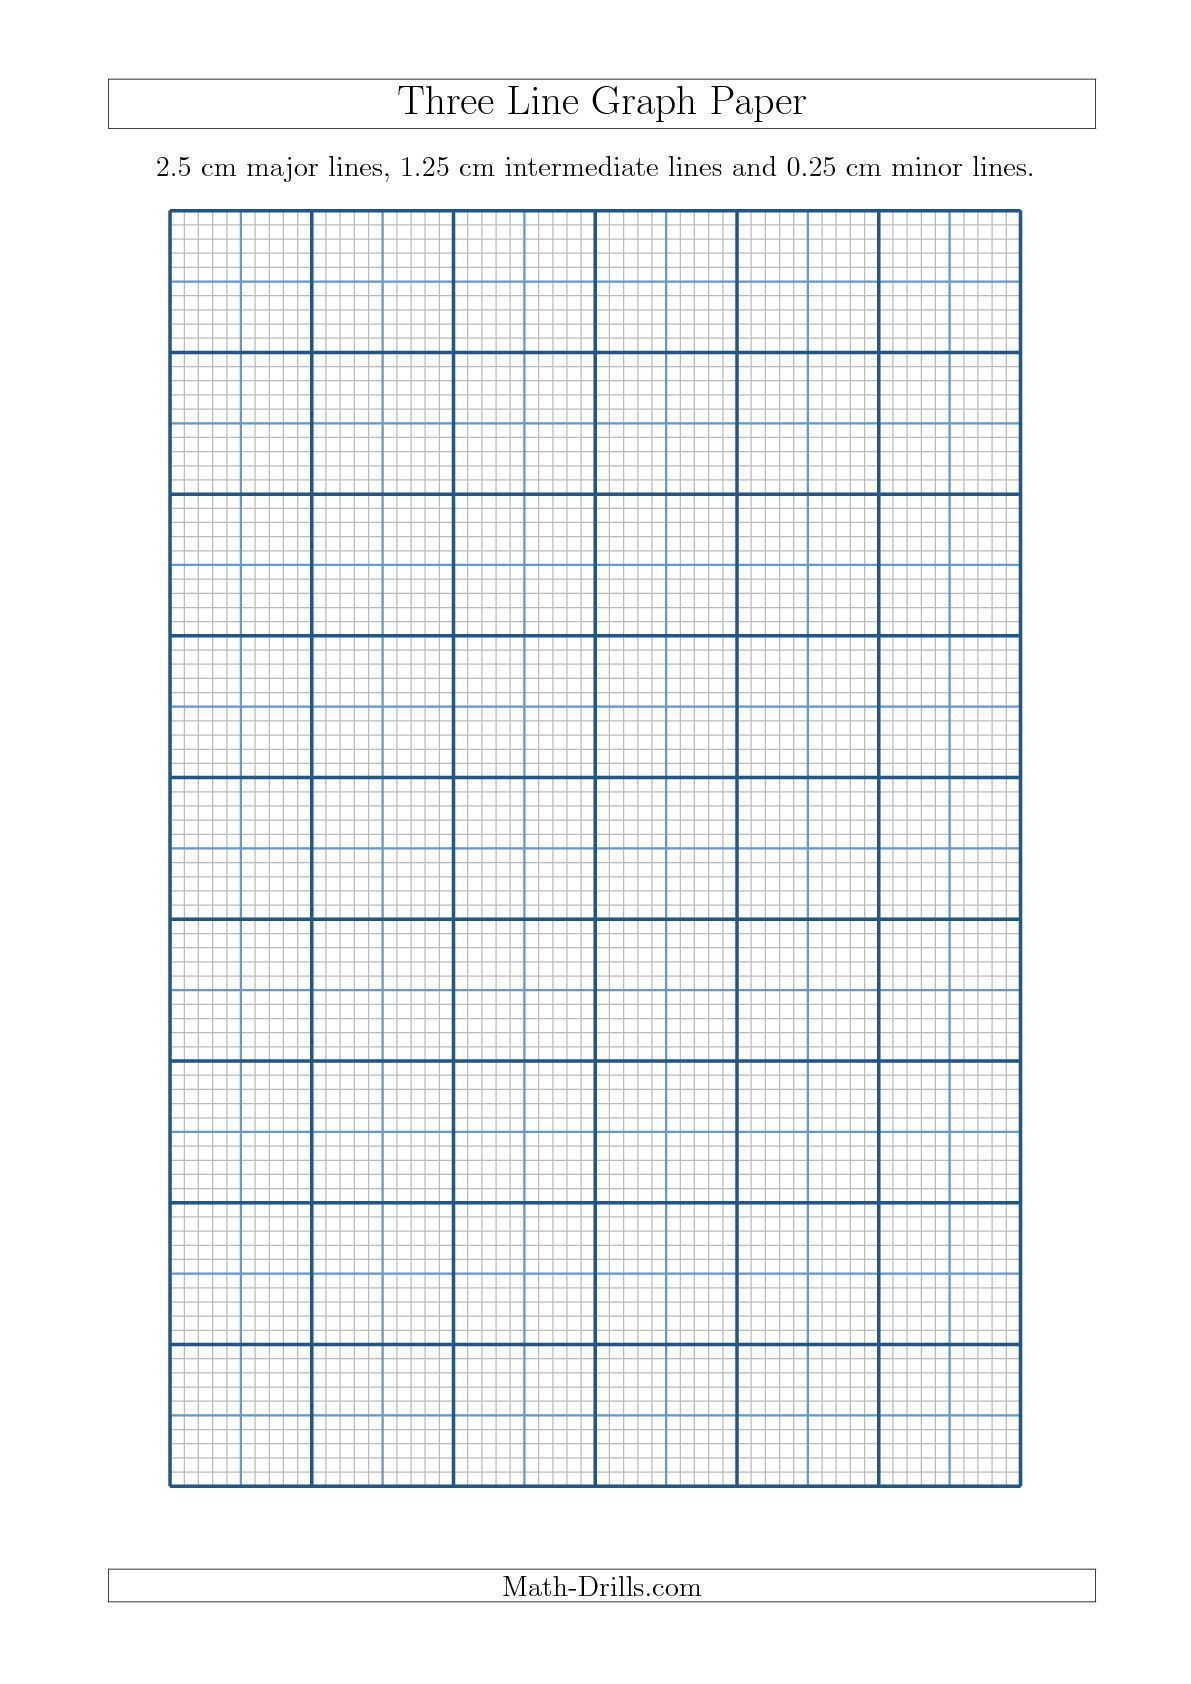 worksheet Line Graph Worksheet new a4 sizes added 2015 09 18 three line graph paper with 2 5 cm major lines intermediate and minor size a math worksheet